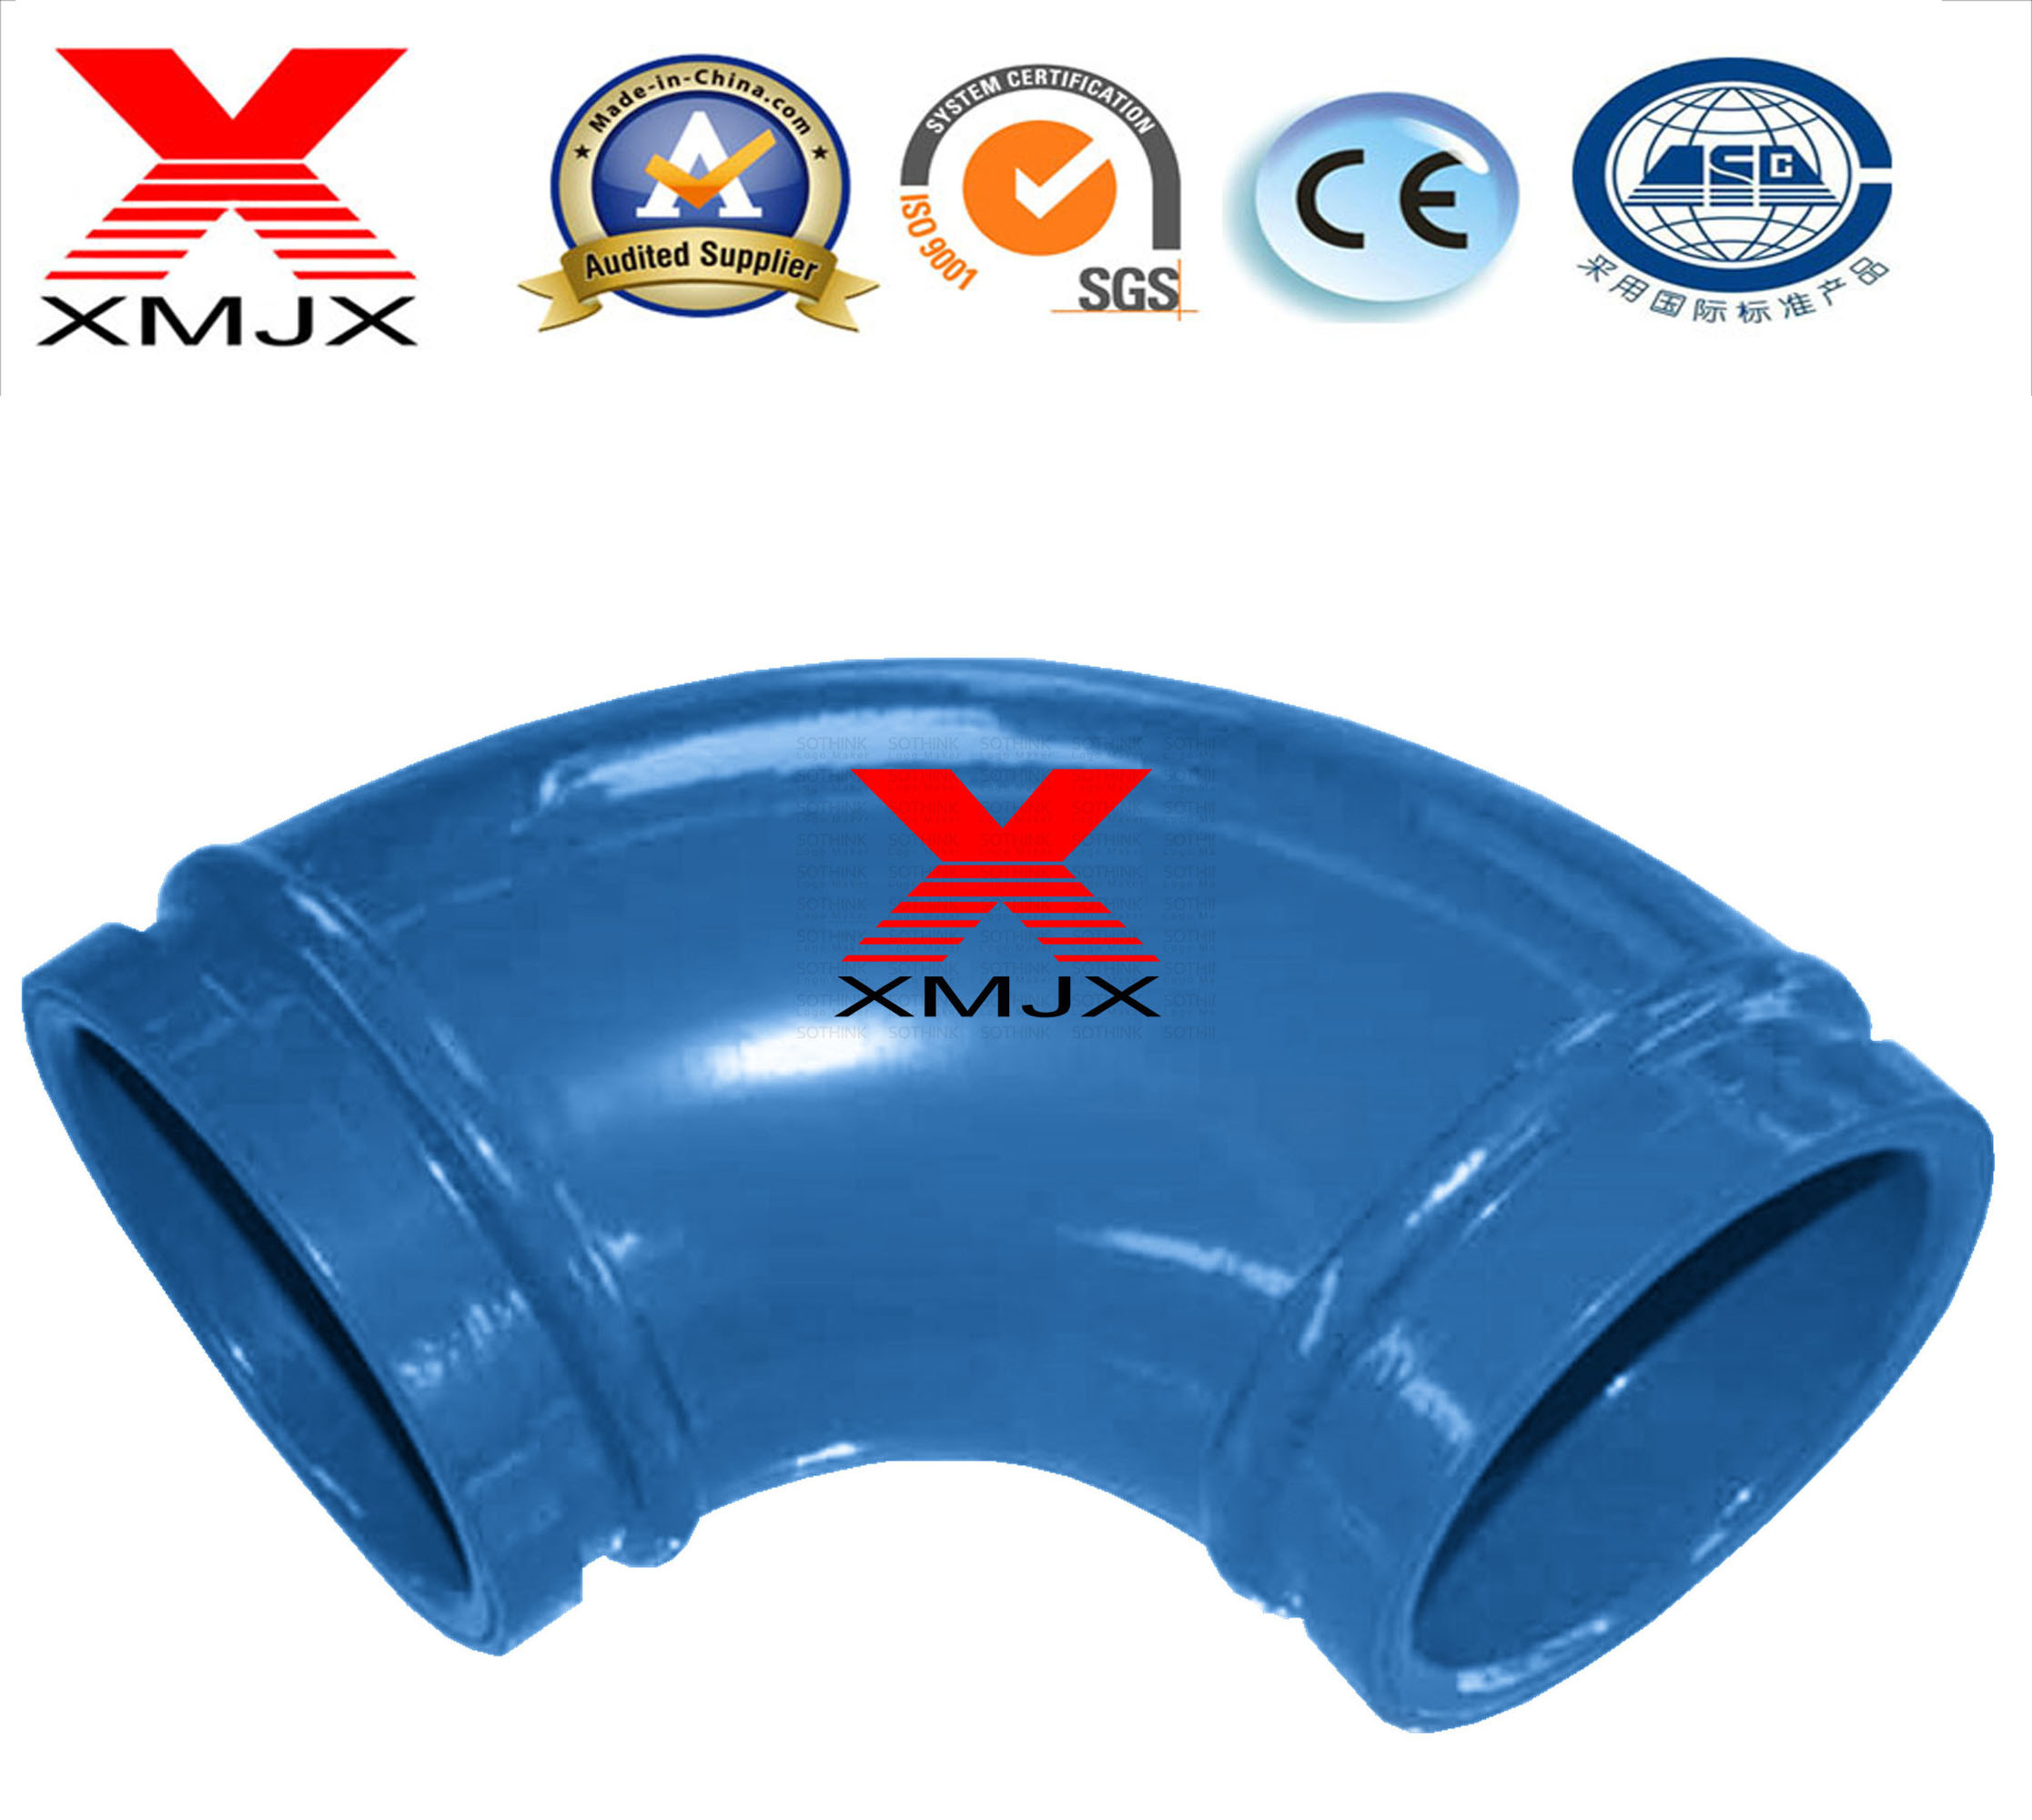 Hebei Ximai Machinery Offering Twin Wall Elbow in Covid19 Moments